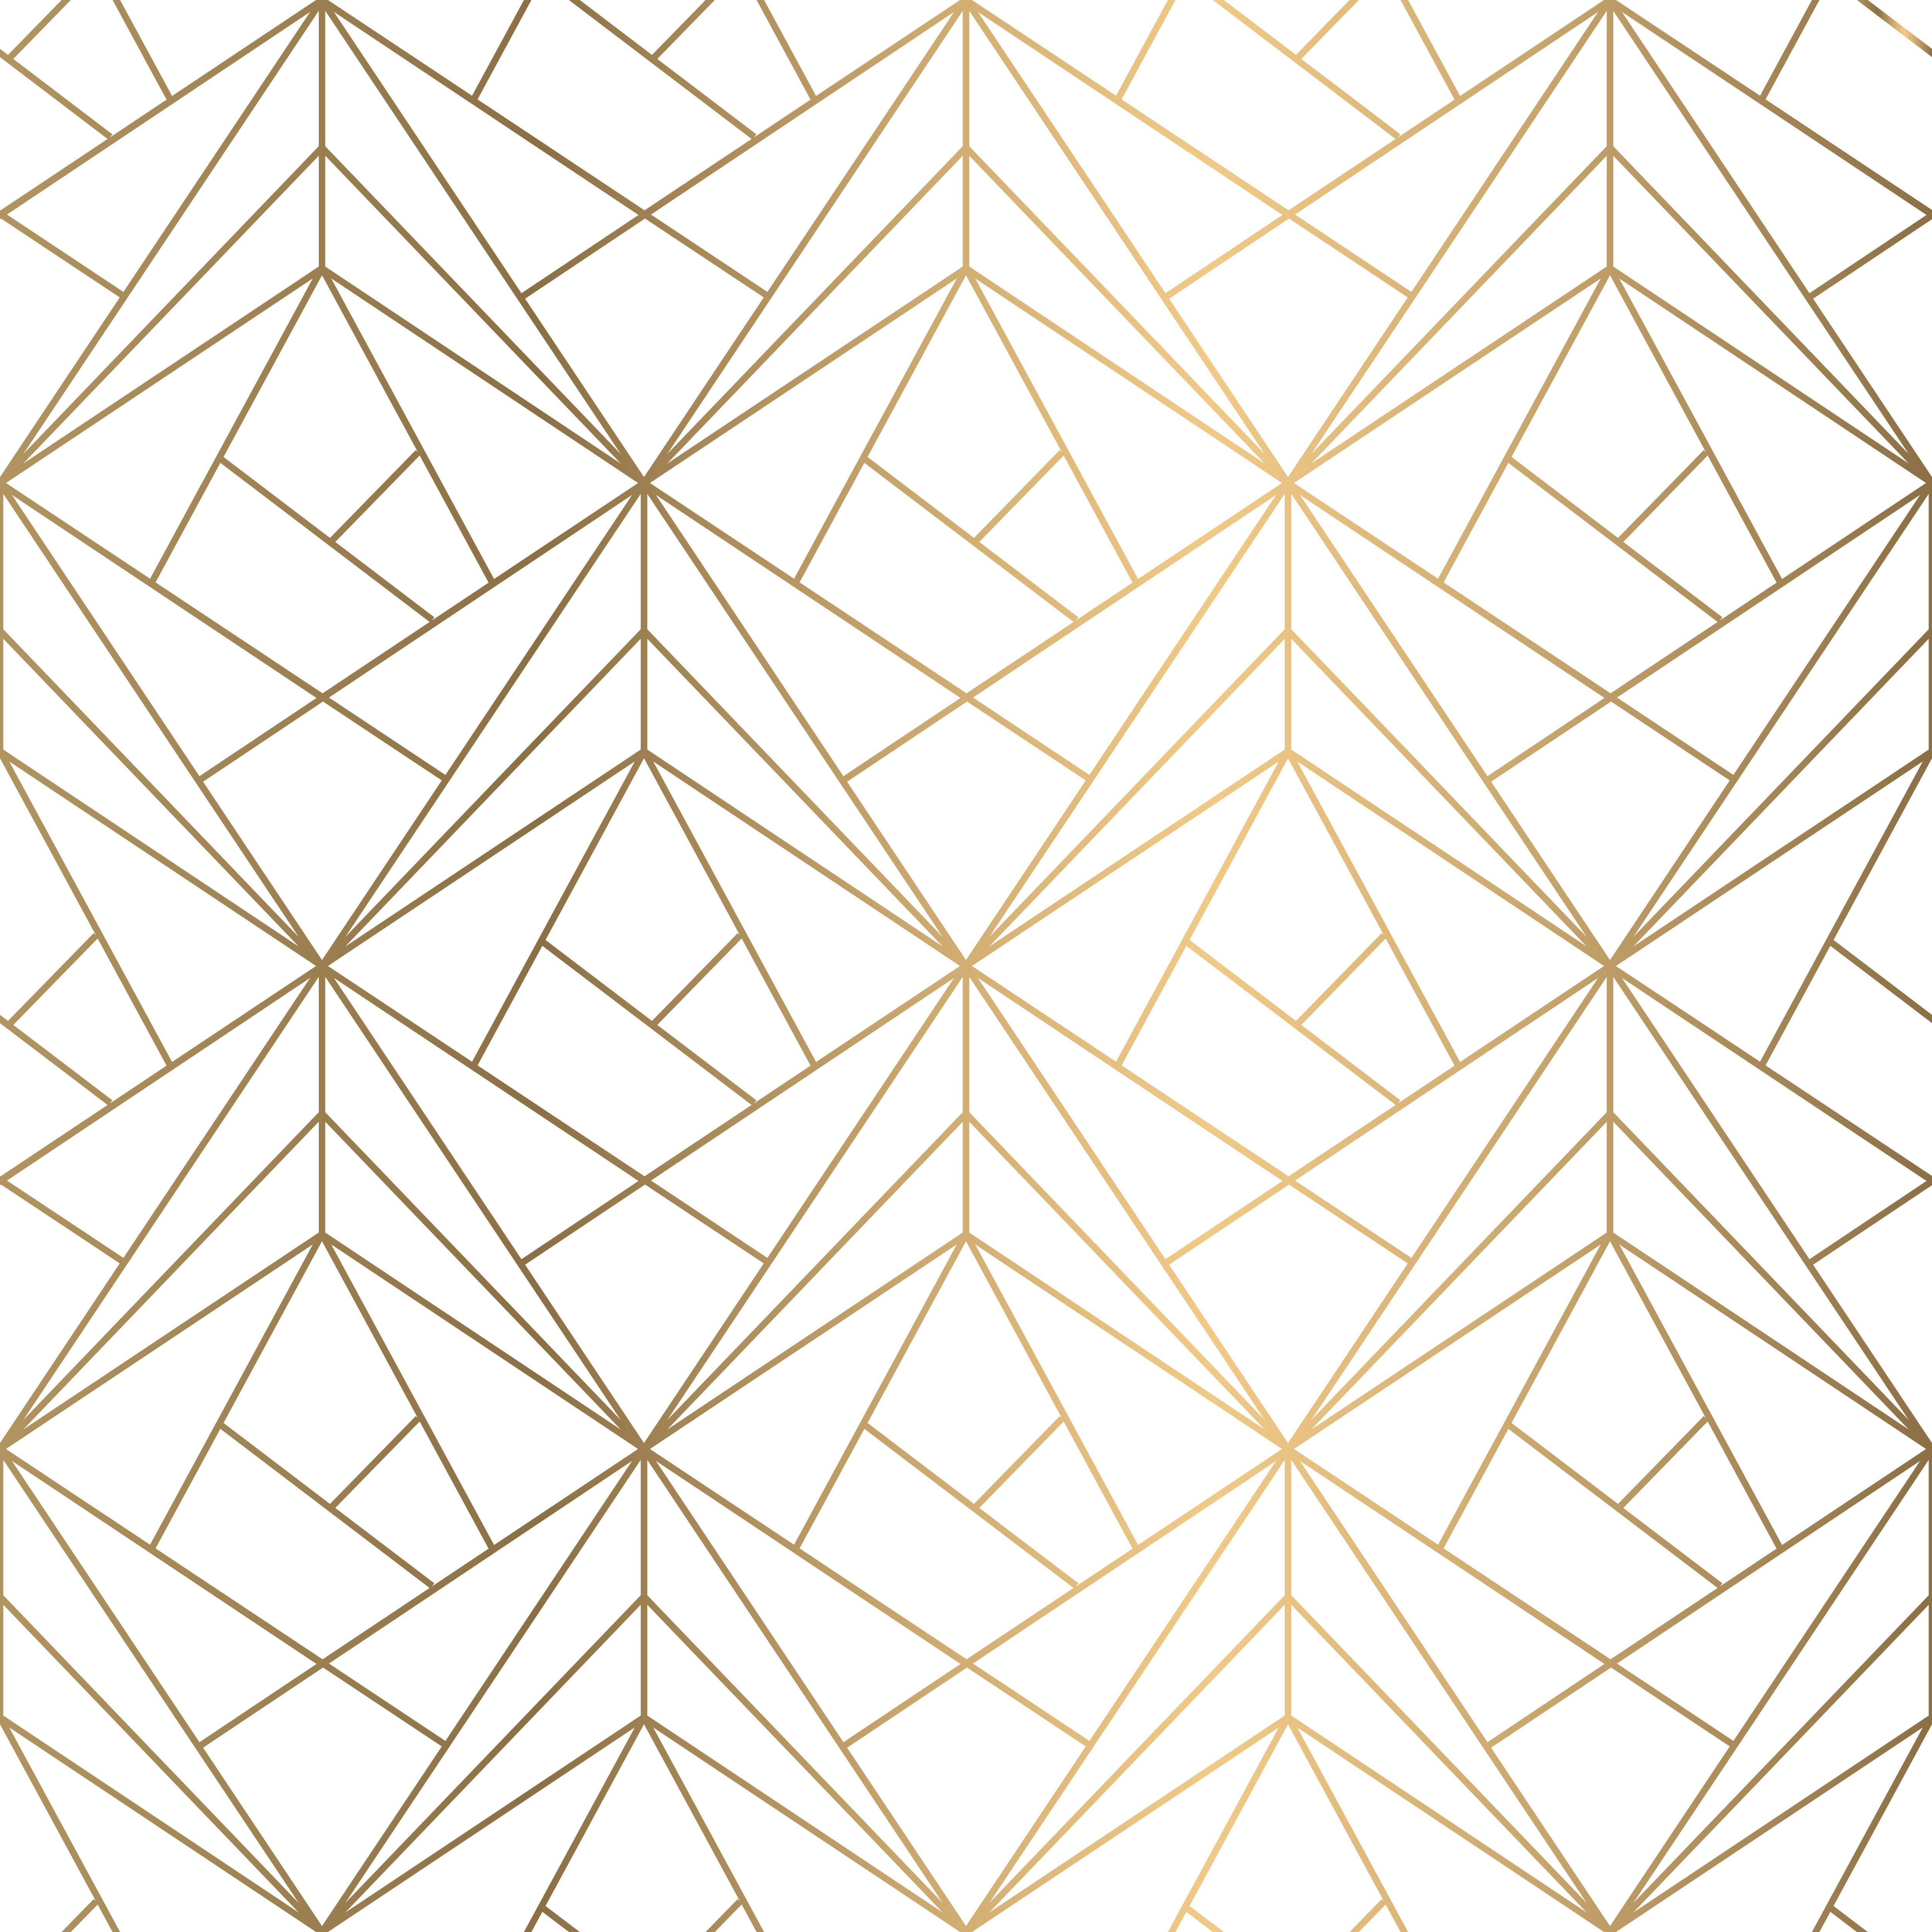 Wohndesign jali wallpaper connections gold lines gold dourado abstract gold